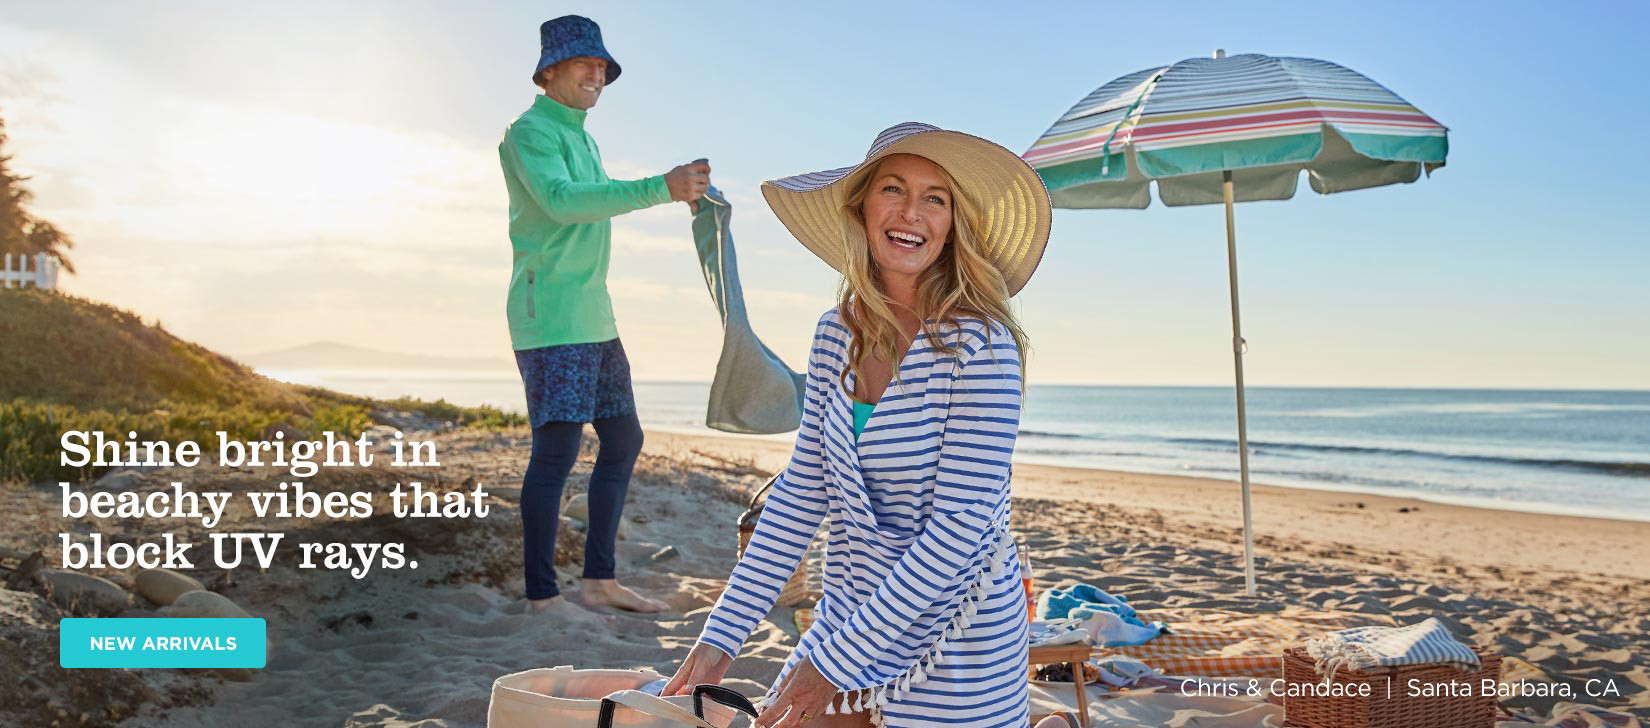 Shine bright in beachy vibes that block UV rays. SHOP SUMMER NEW ARRIVALS